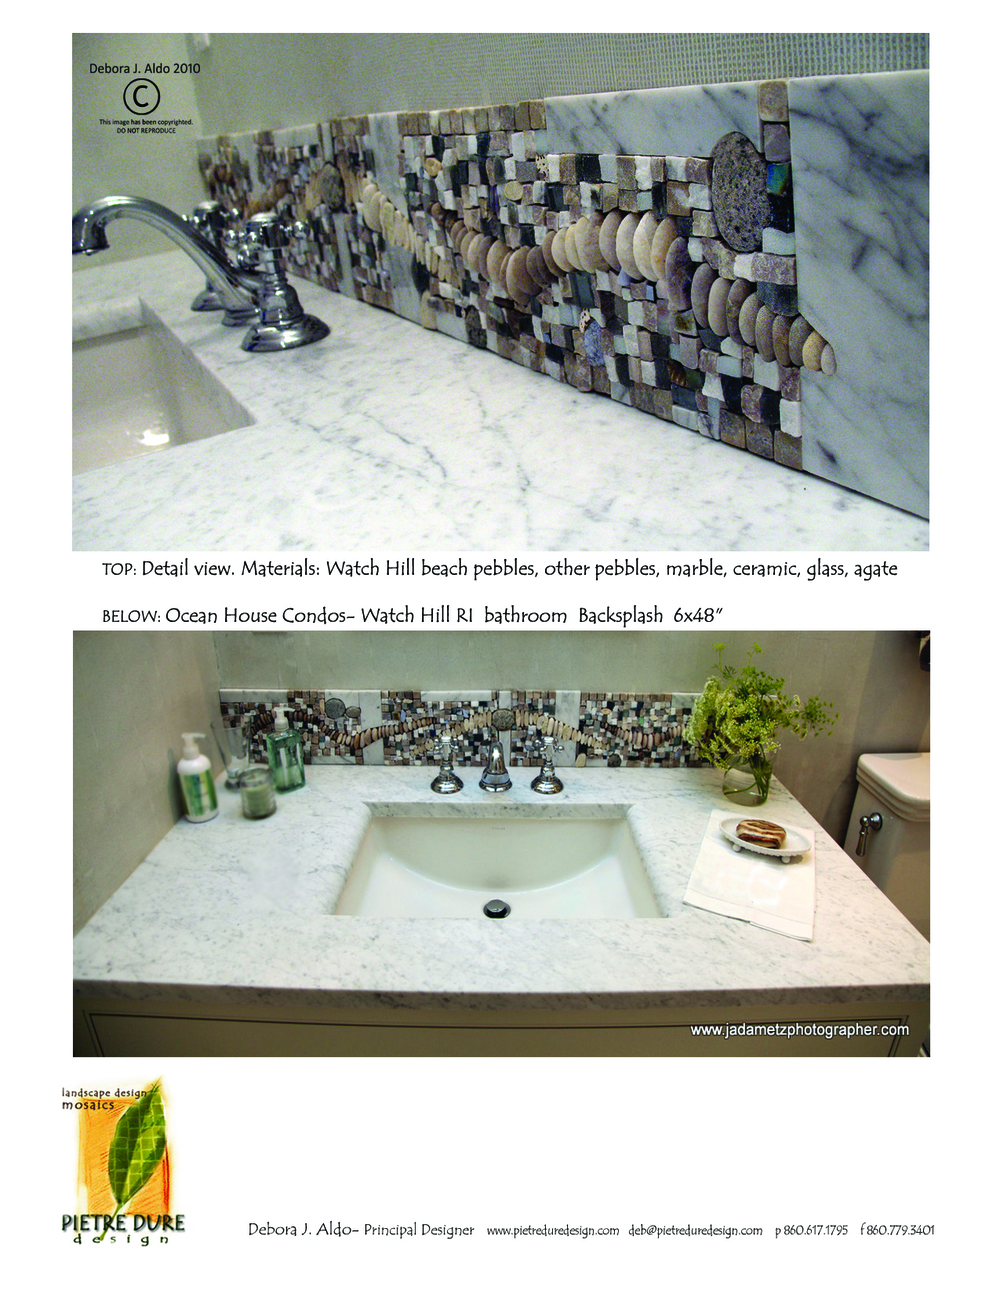 Ocean House backsplash.jpg